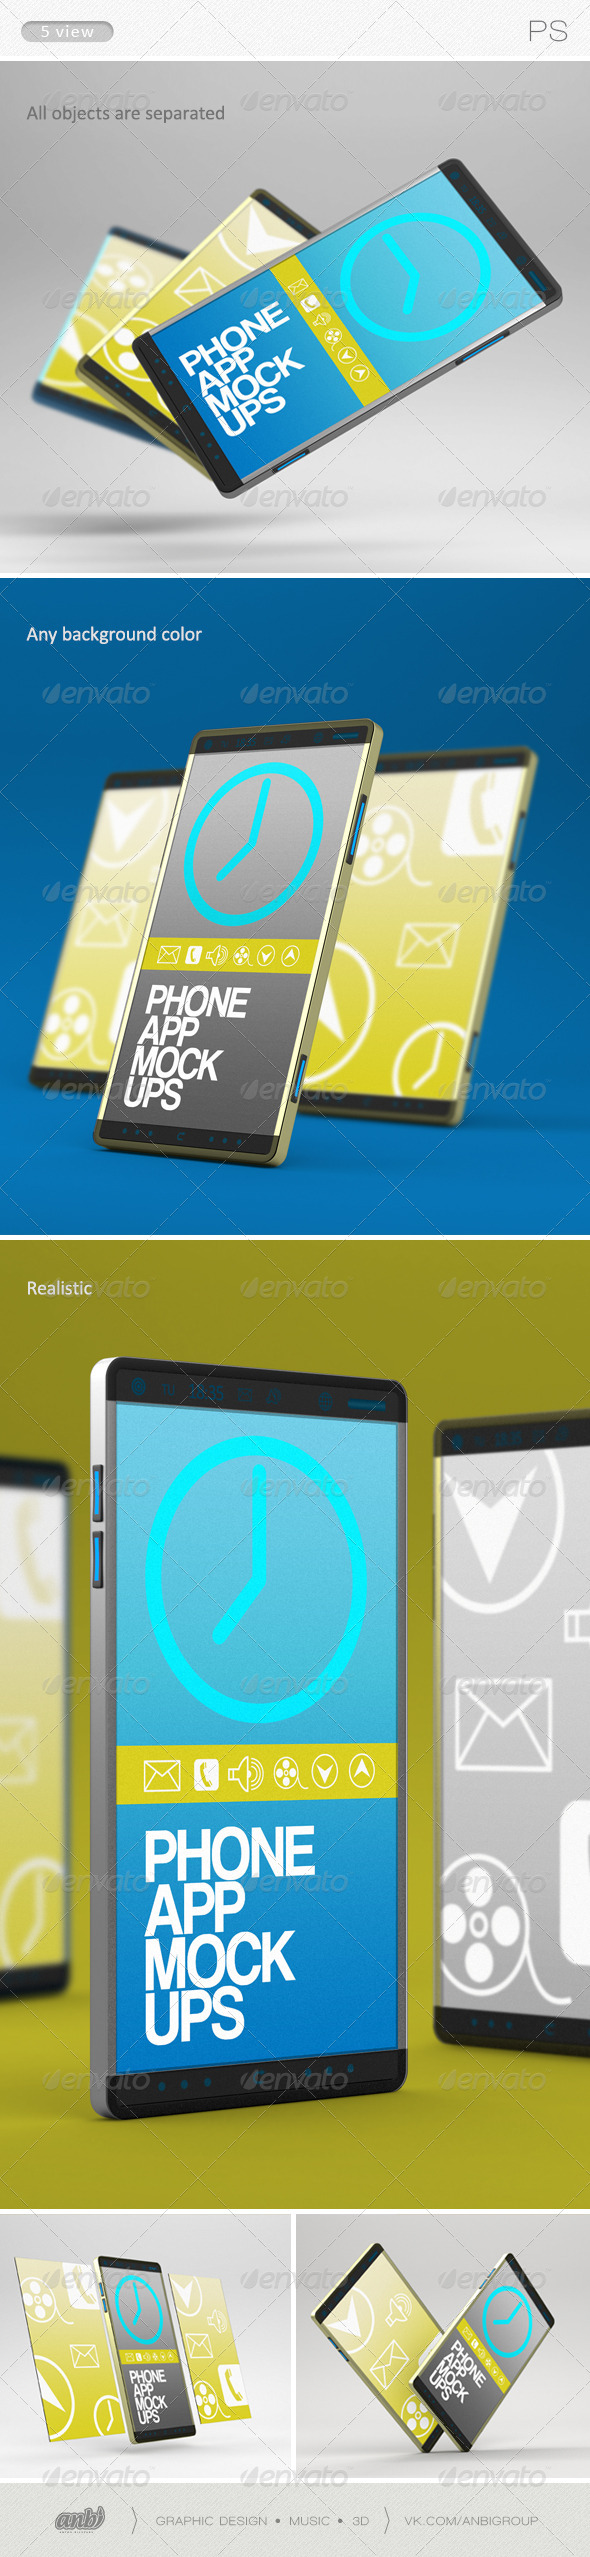 Phone App Mock-Ups - Mobile Displays